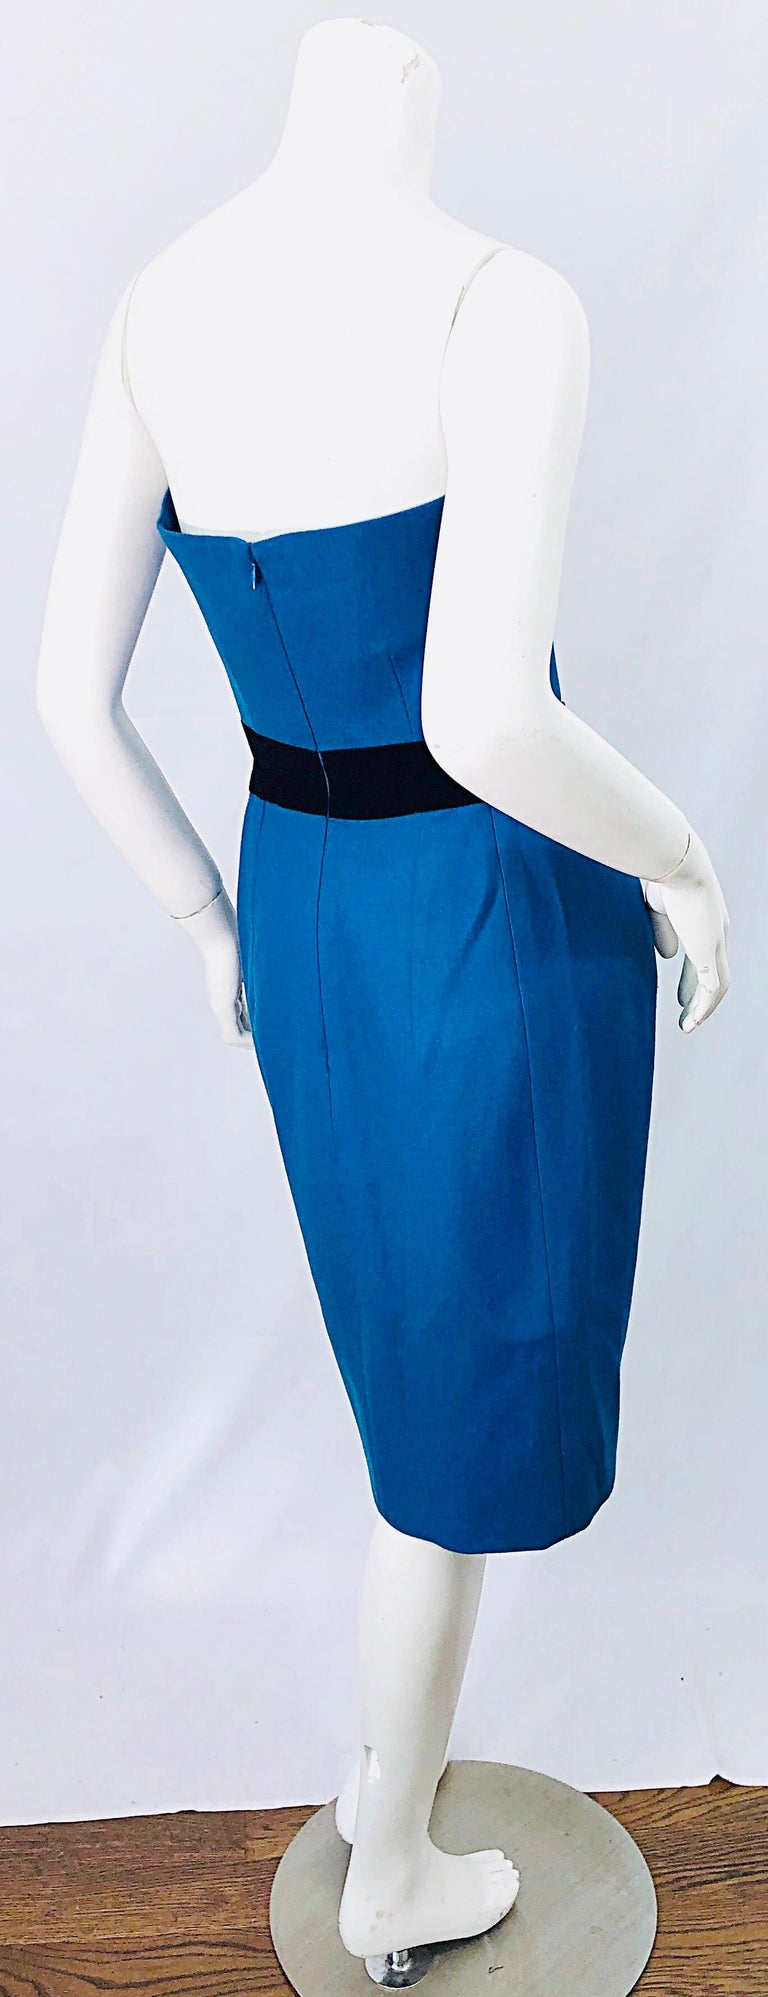 Ad Campaign Yves Saint Laurent YSL Fall / Winter 2008 Turquoise Blue Dress In Excellent Condition For Sale In Chicago, IL